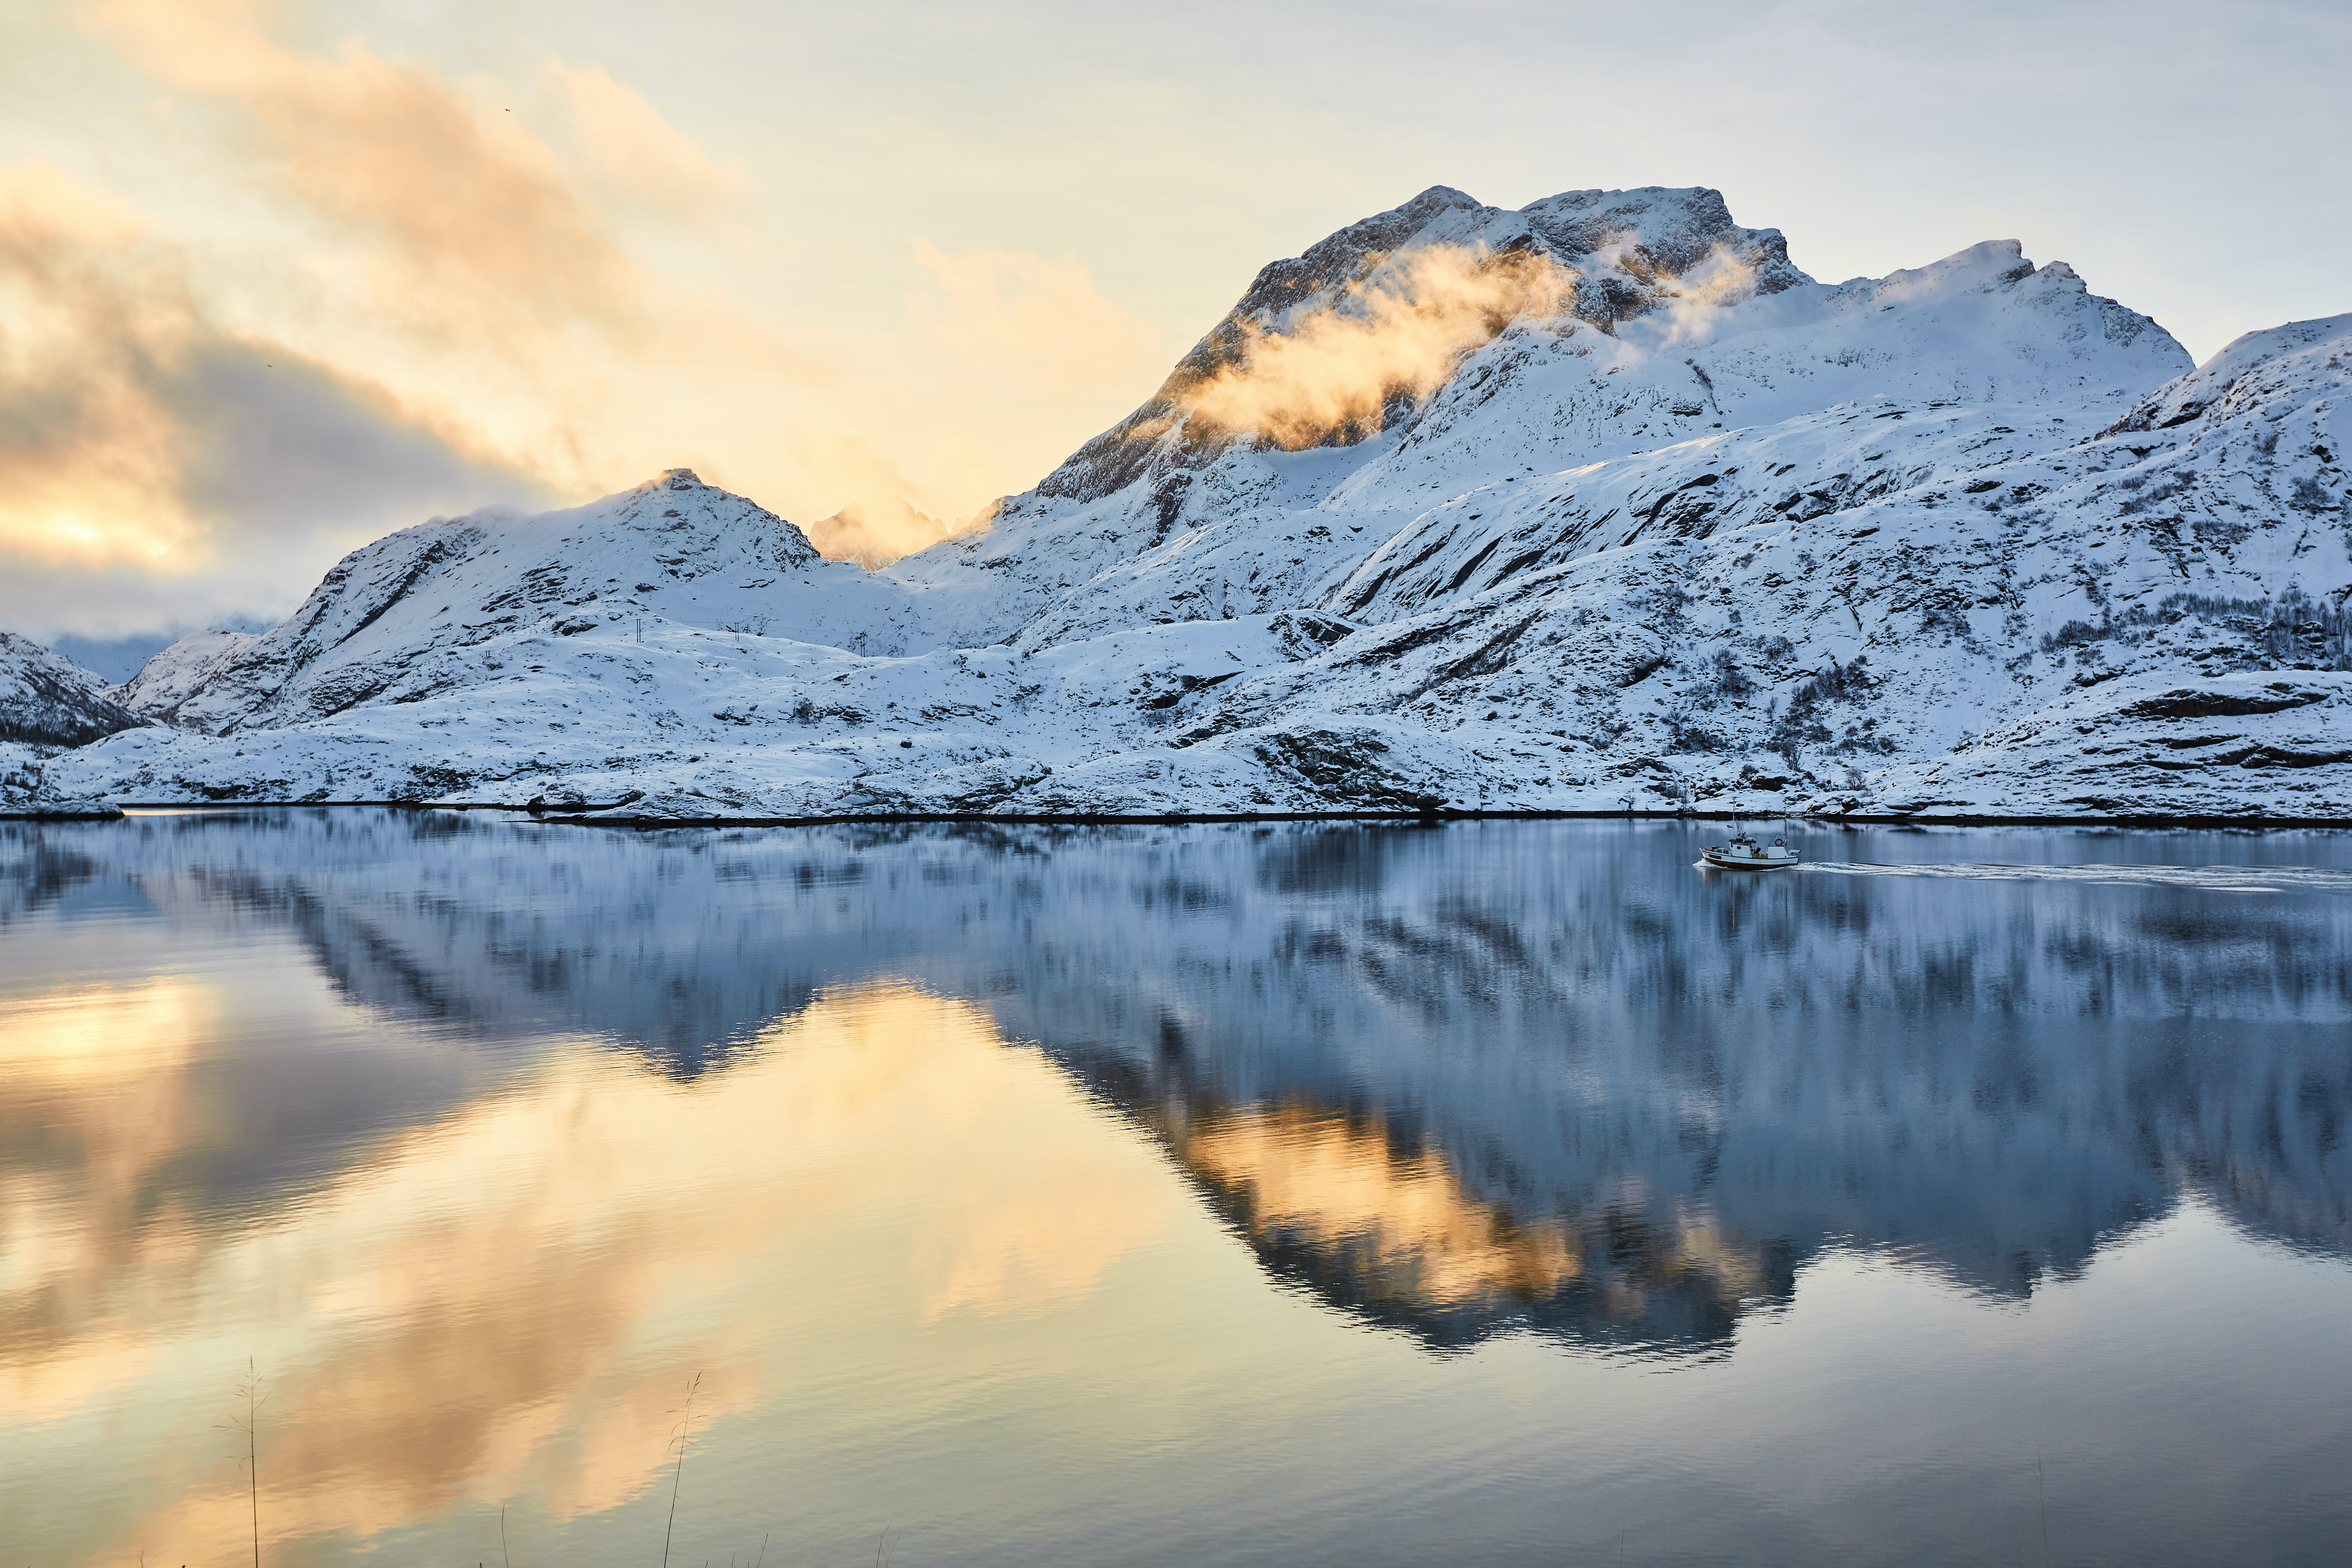 mountain with snow and reflection on water